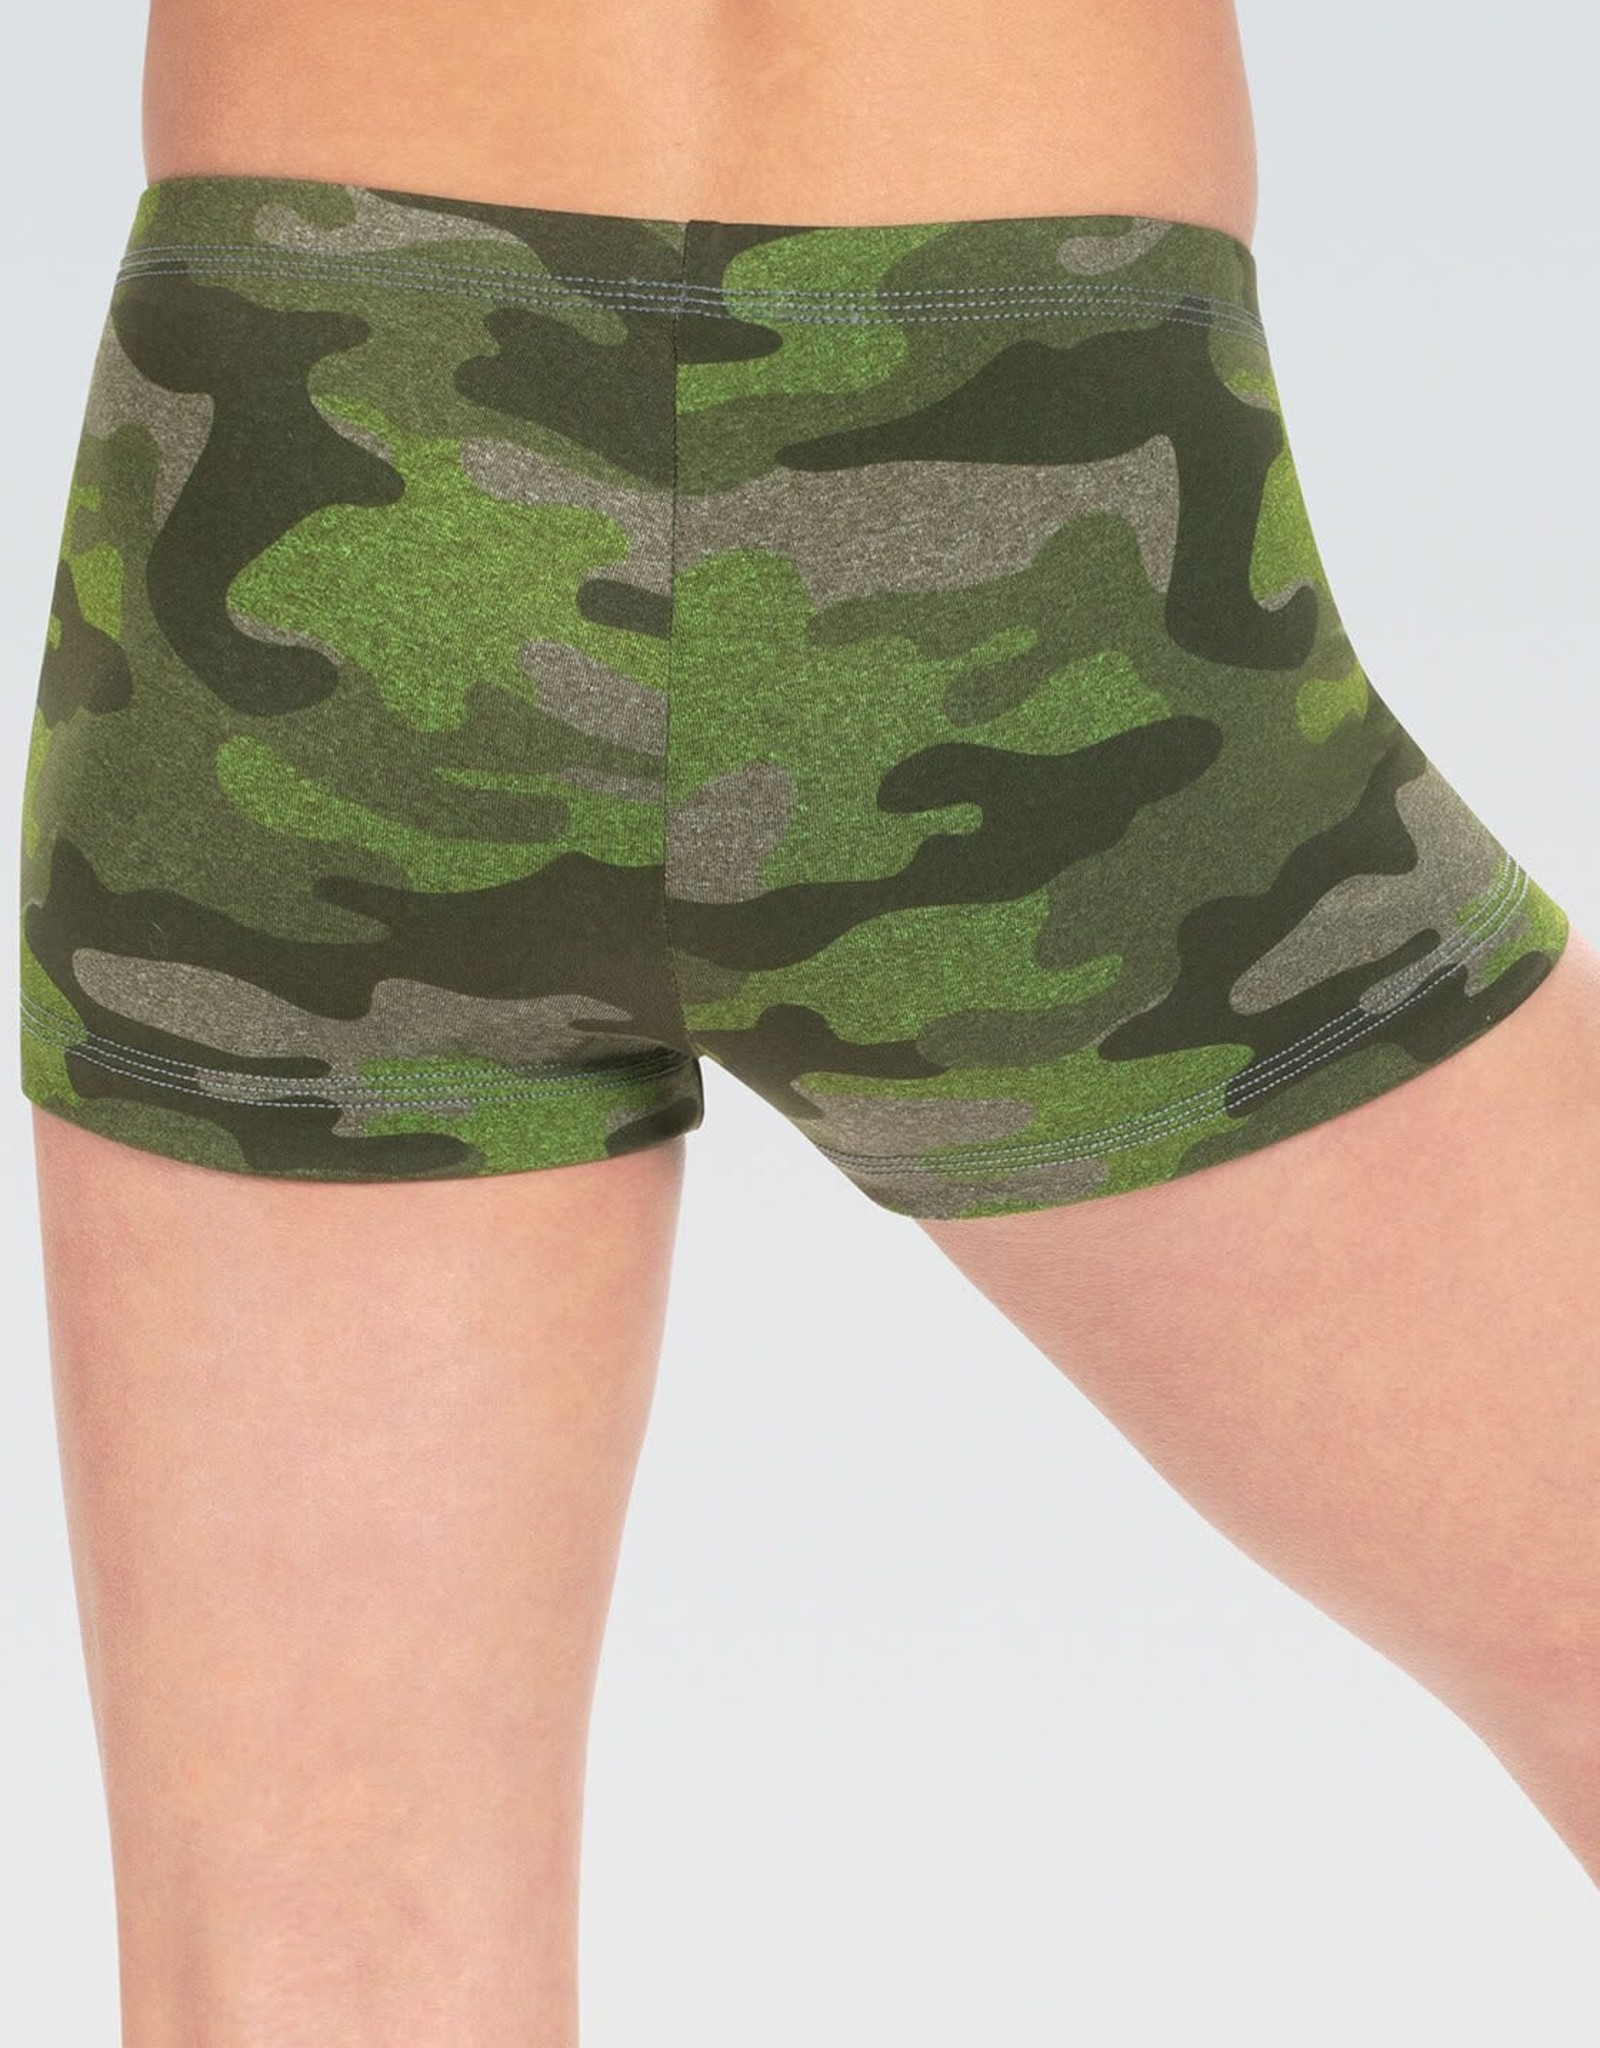 GK Elite E4137- Camo Workout Shorts